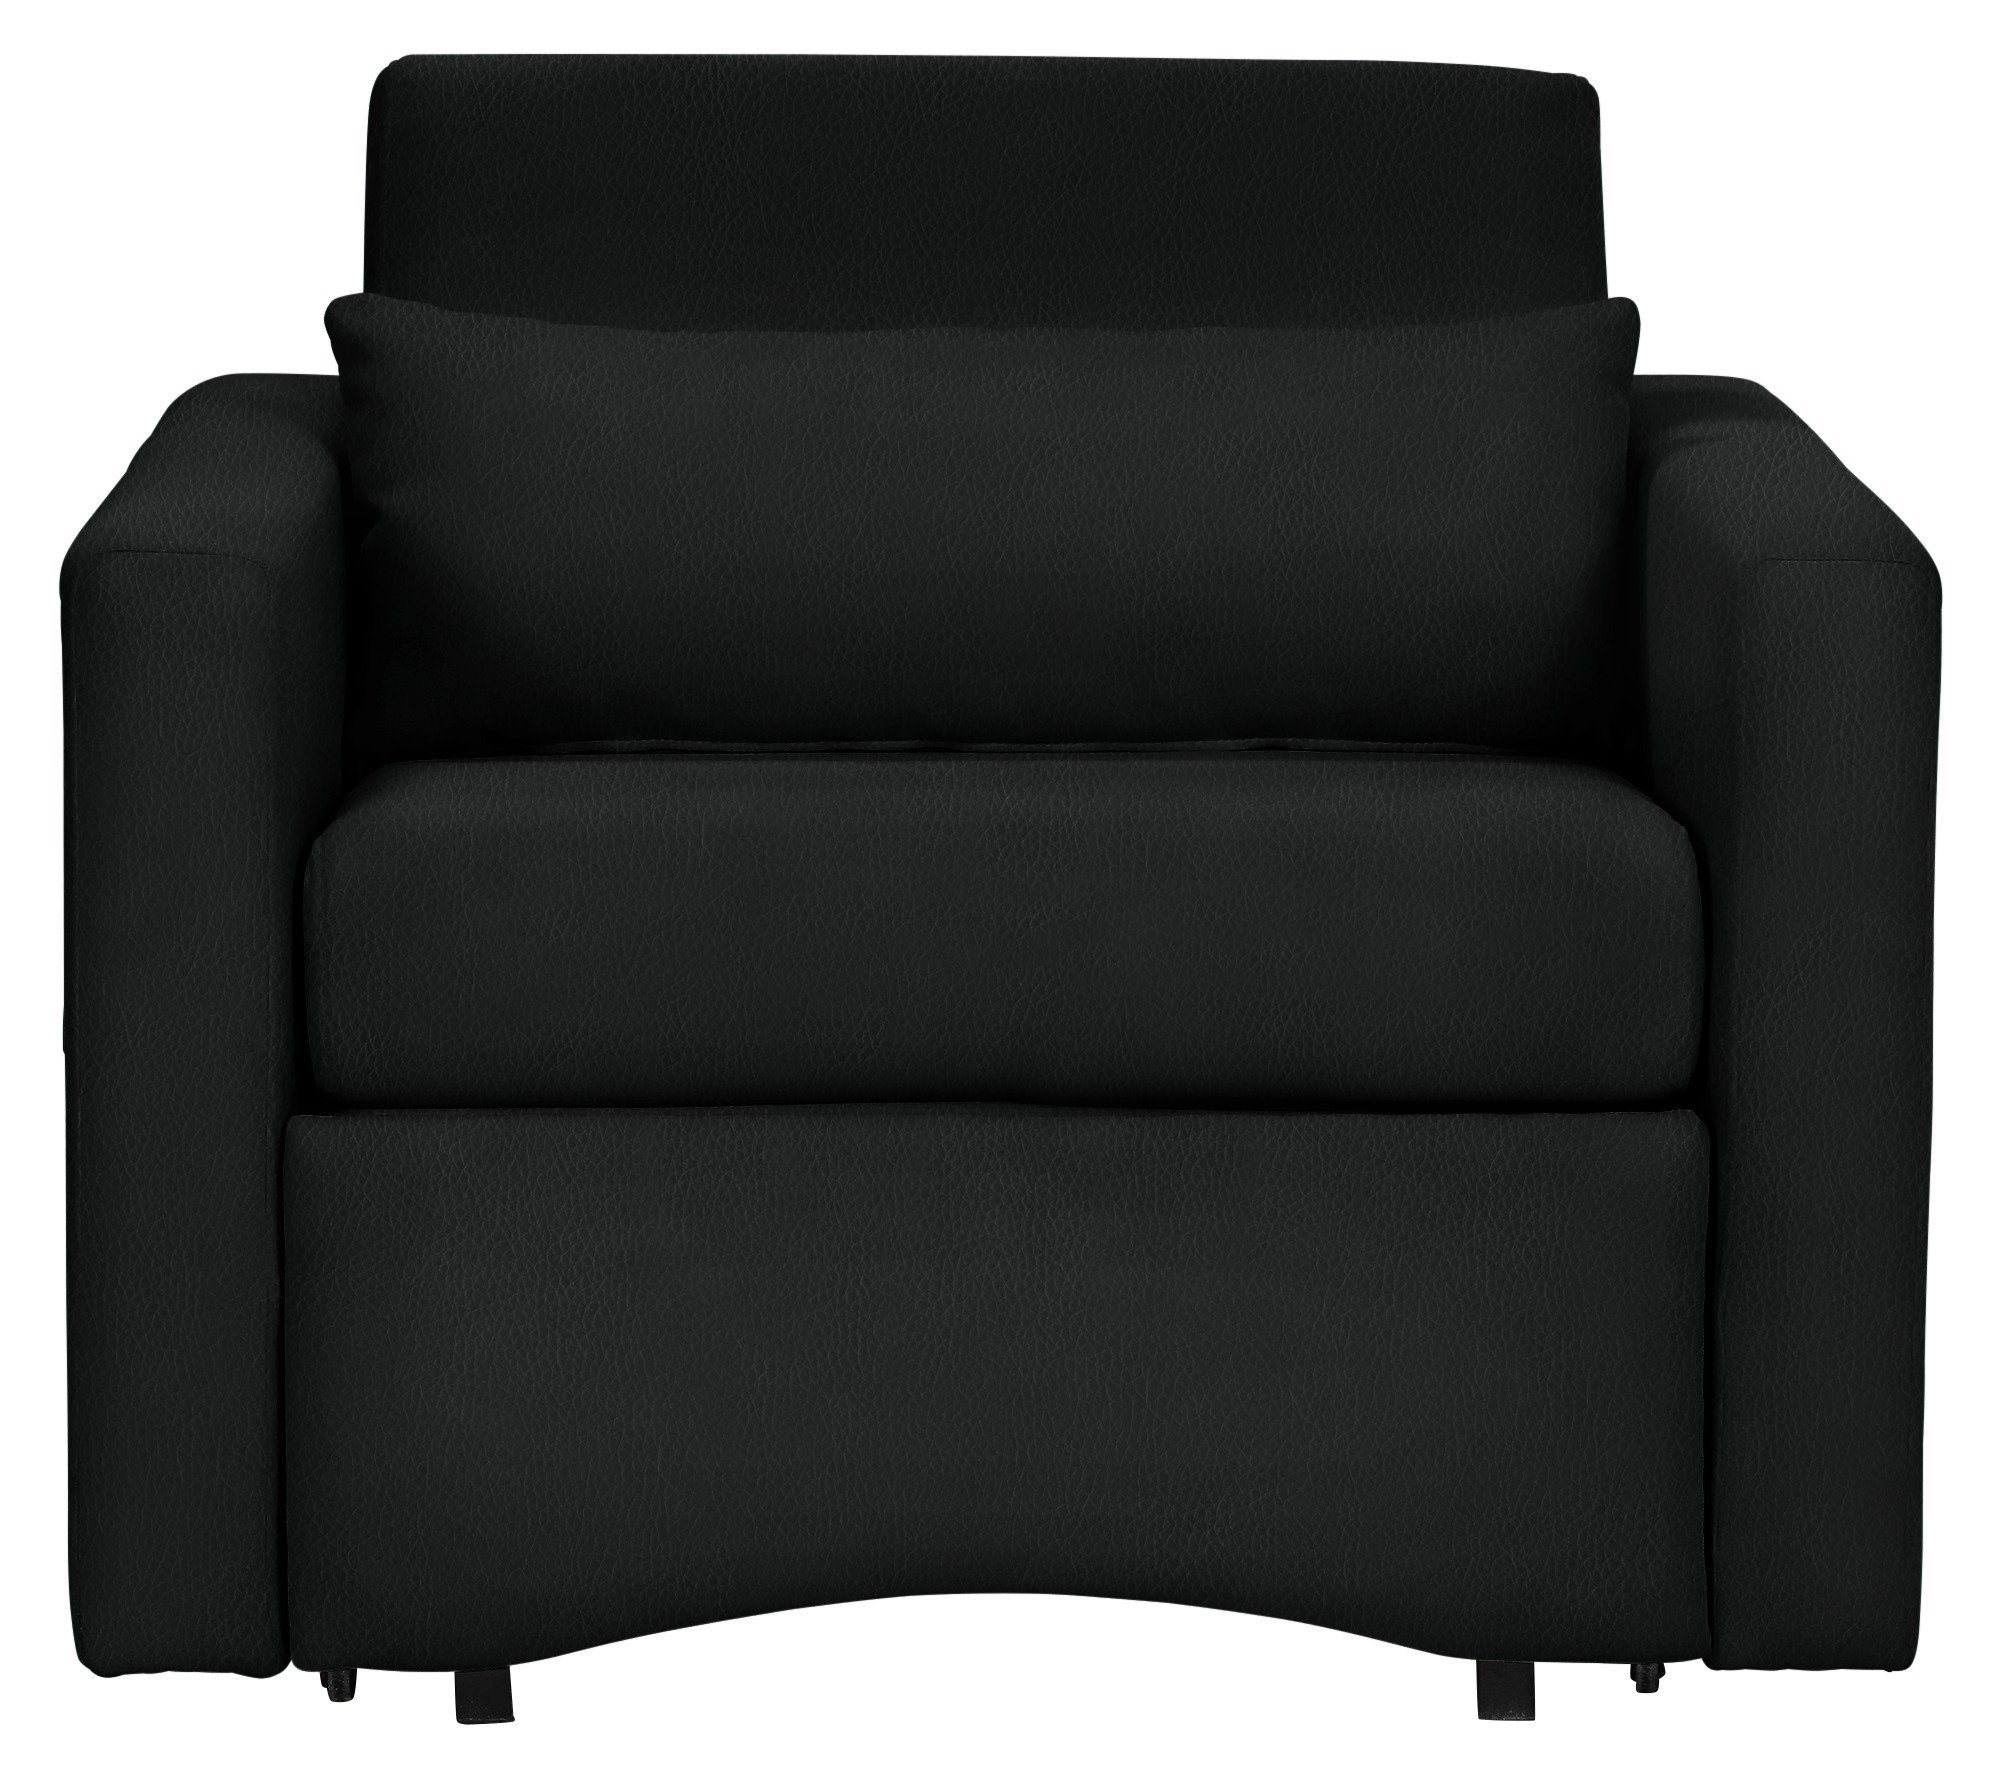 Argos Home Reagan Faux Leather Chairbed - Black